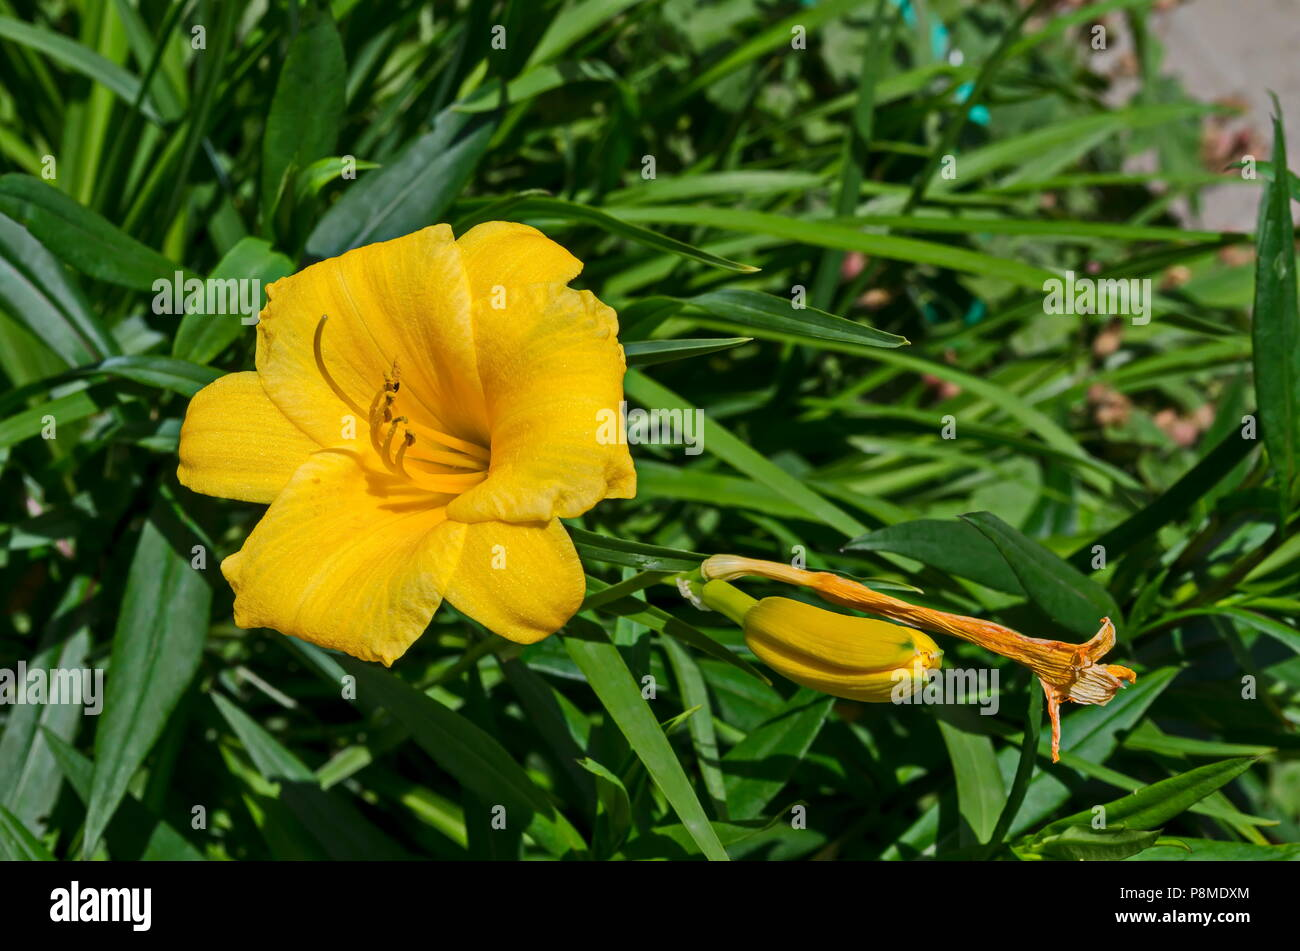 Hemerocallis Stella Oro Stock Photos Hemerocallis Stella Oro Stock